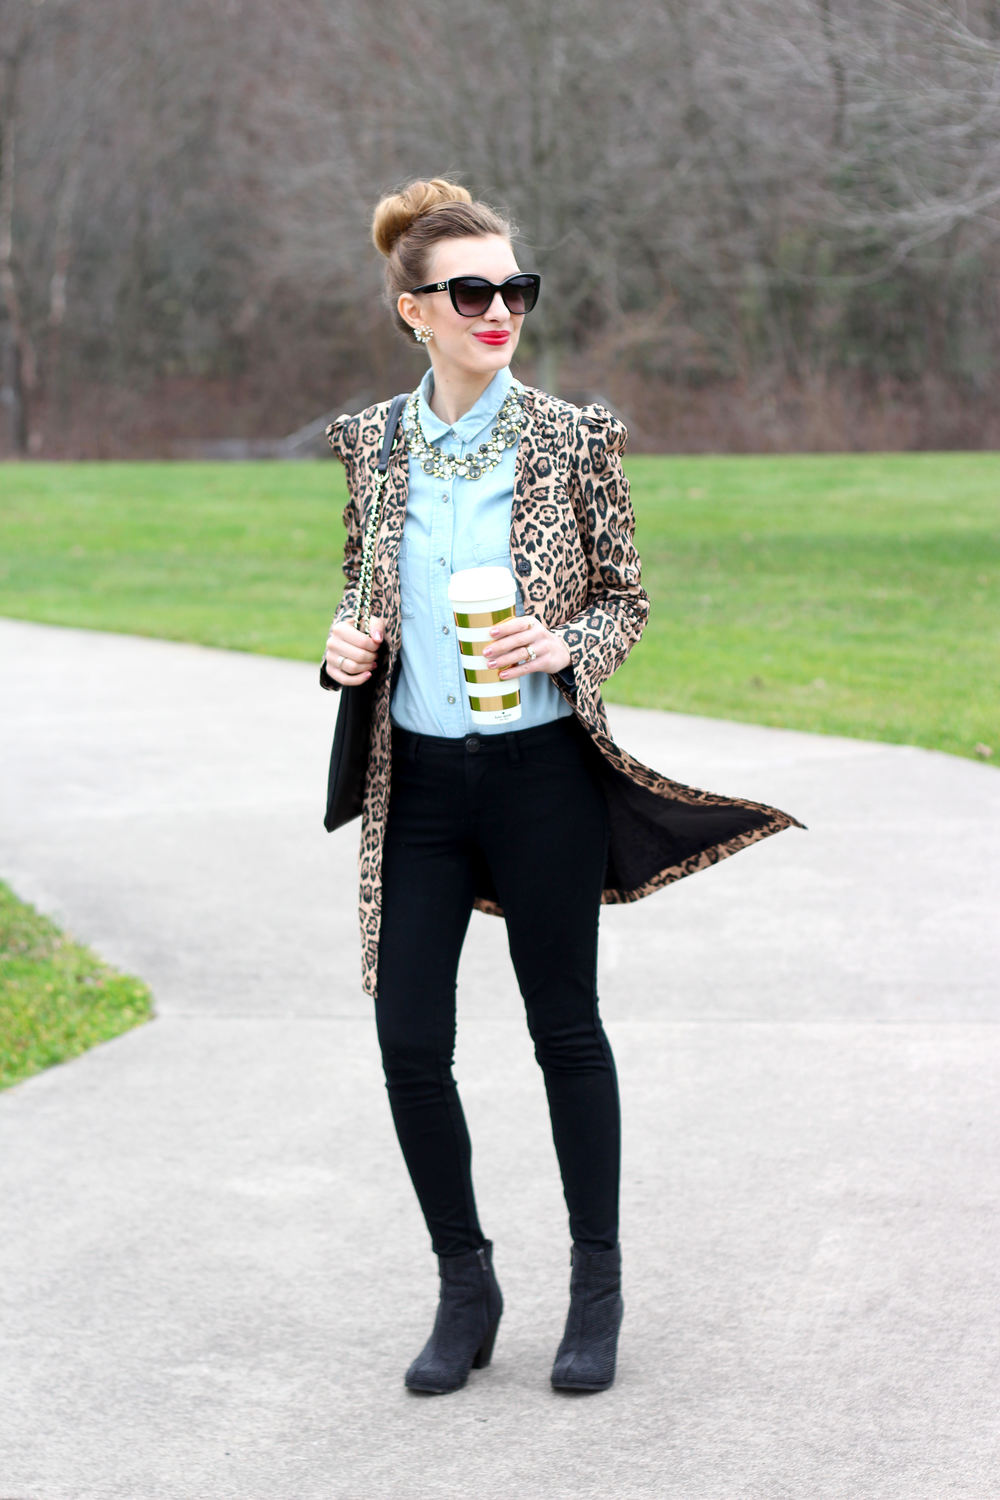 Leopard Coat and Statement Necklace-Enchanting Elegance